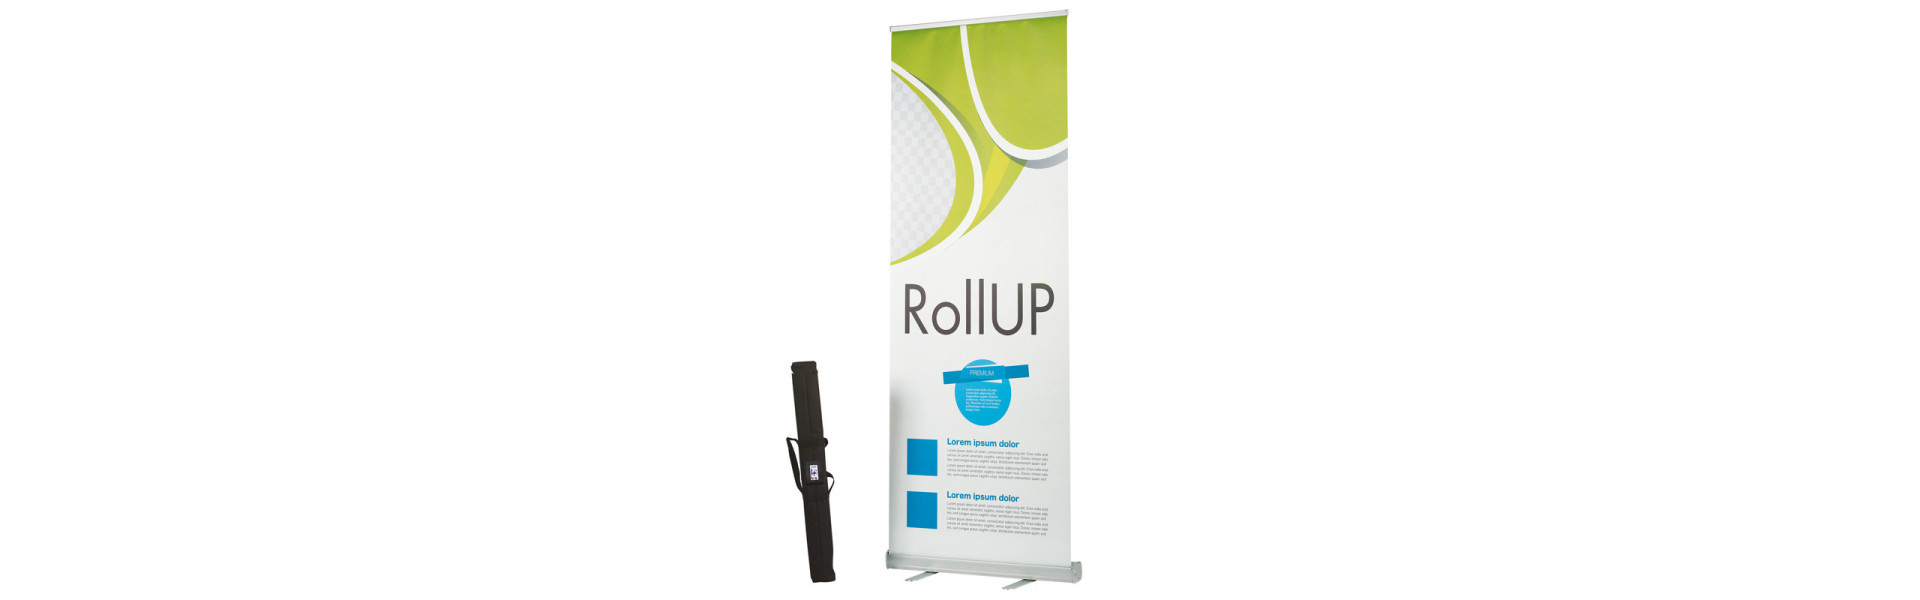 Display - Roll Up